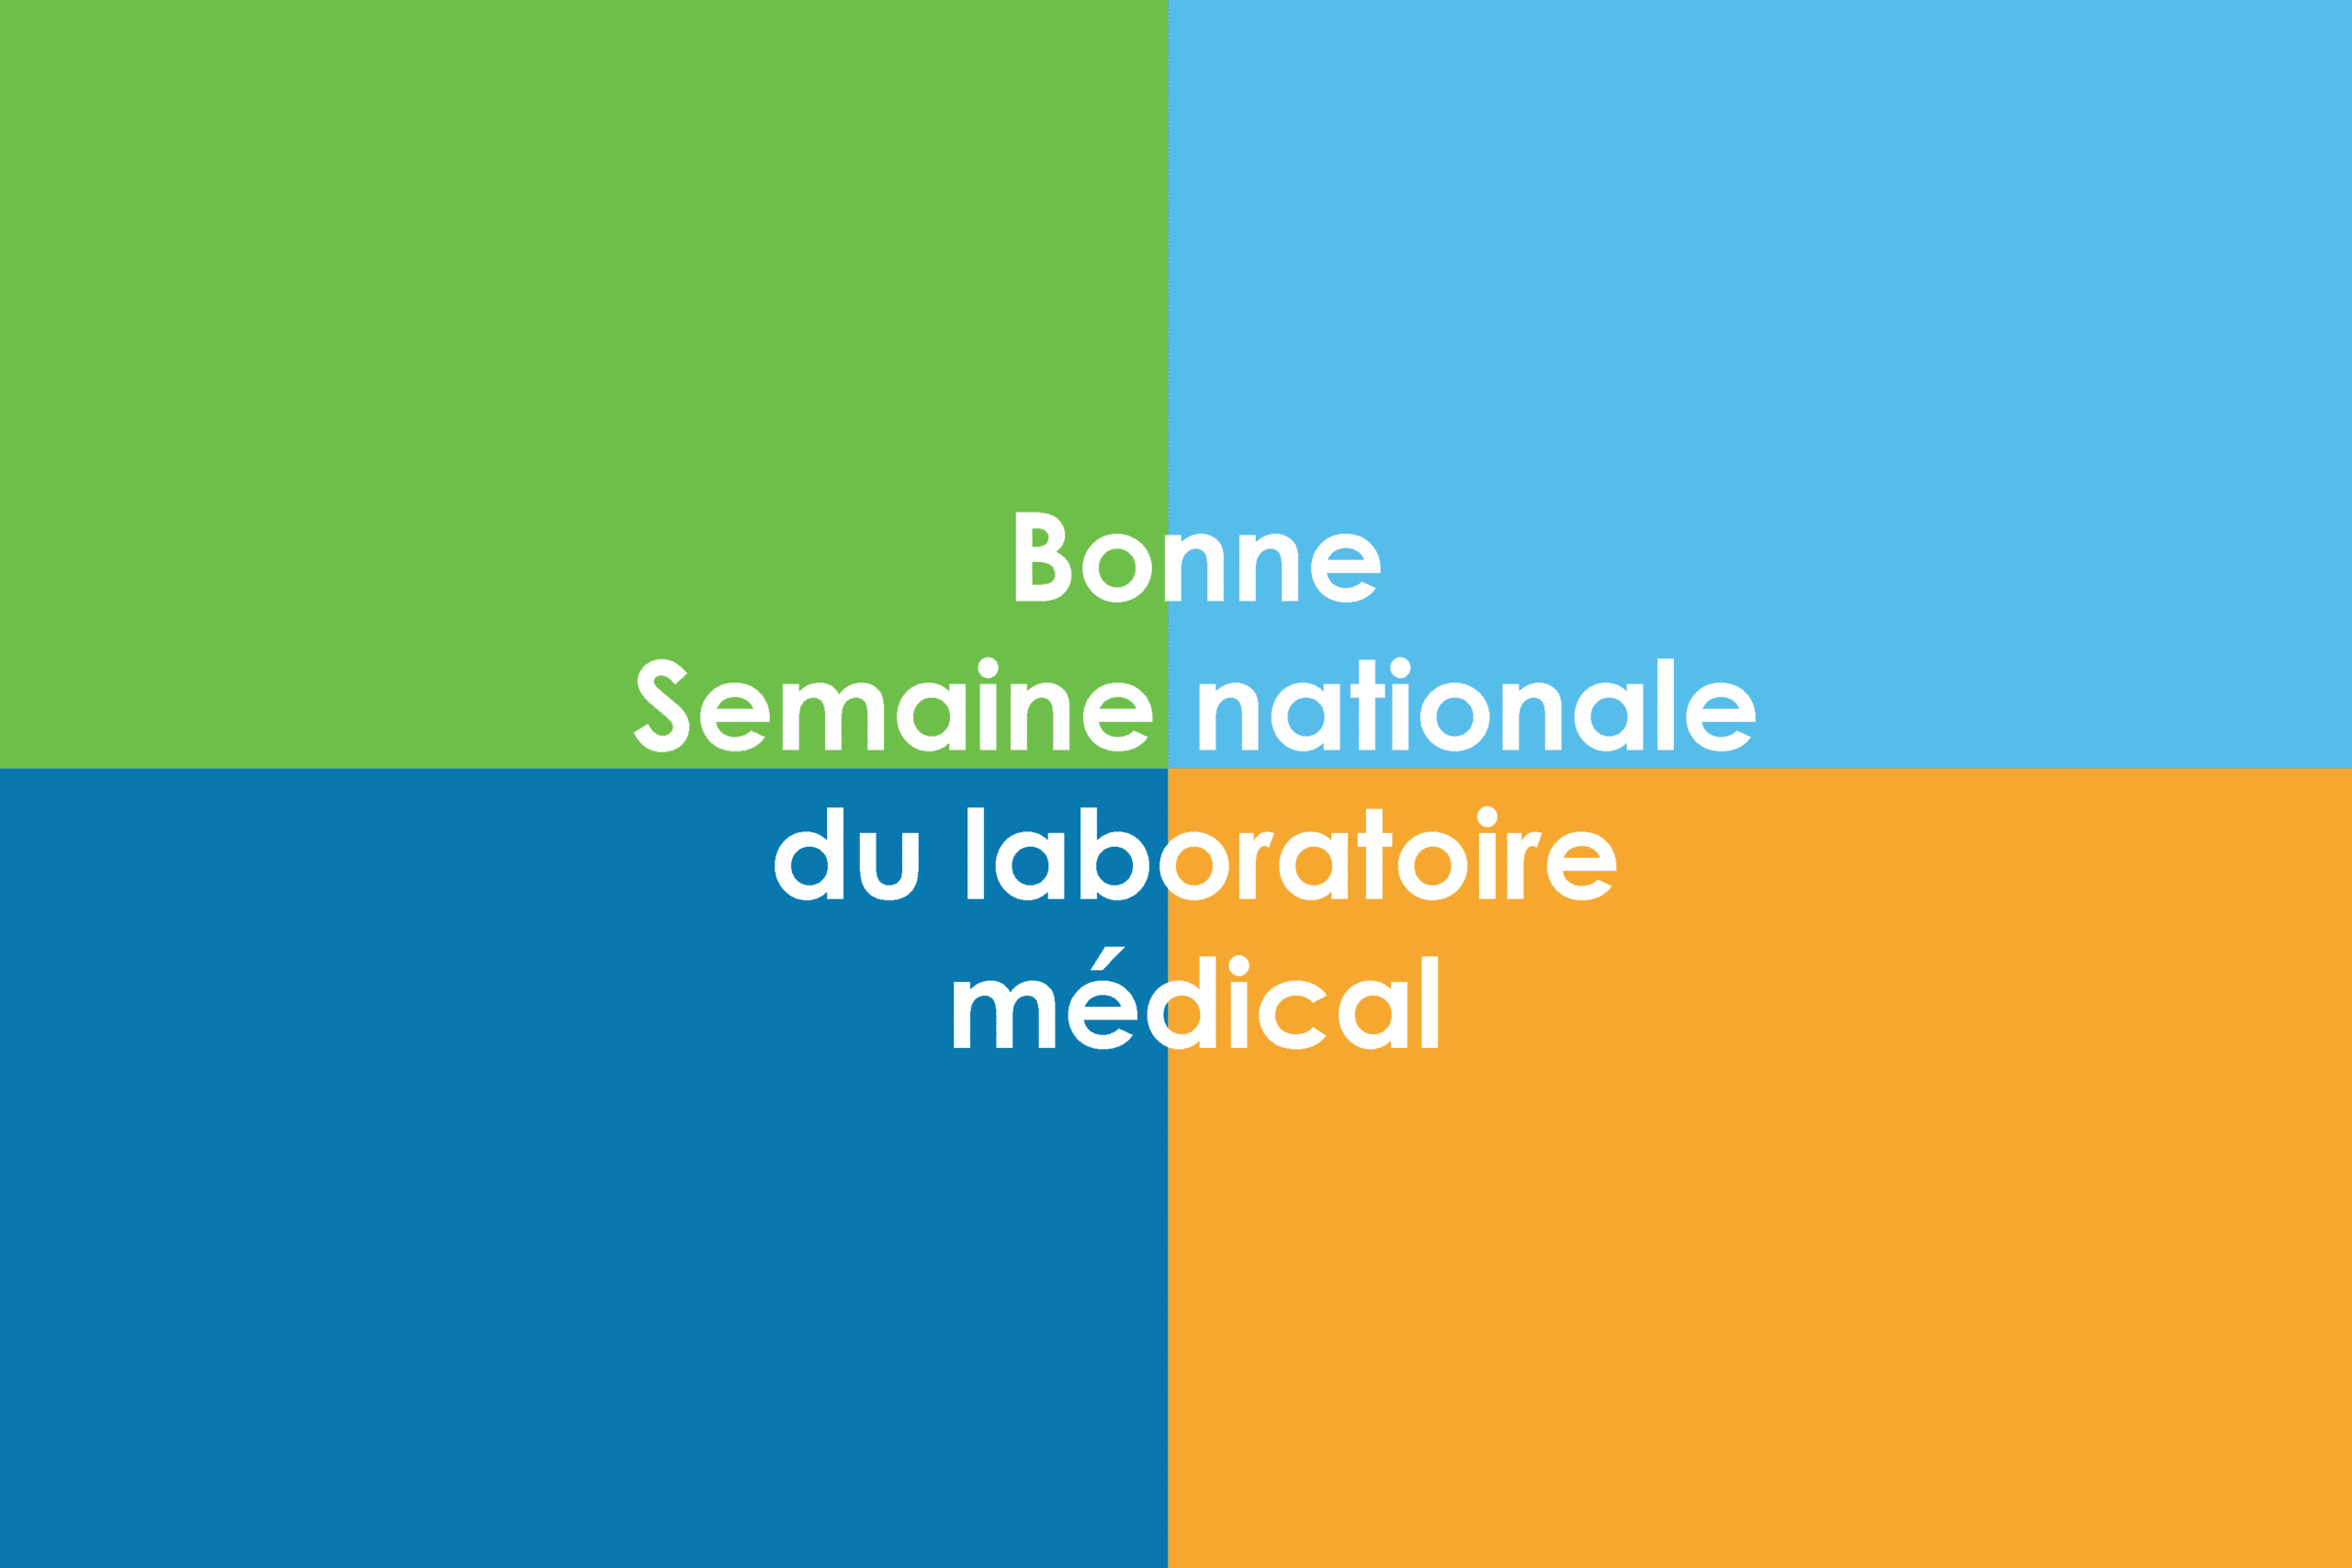 Bonee Semaine nationale de laboratoire medical